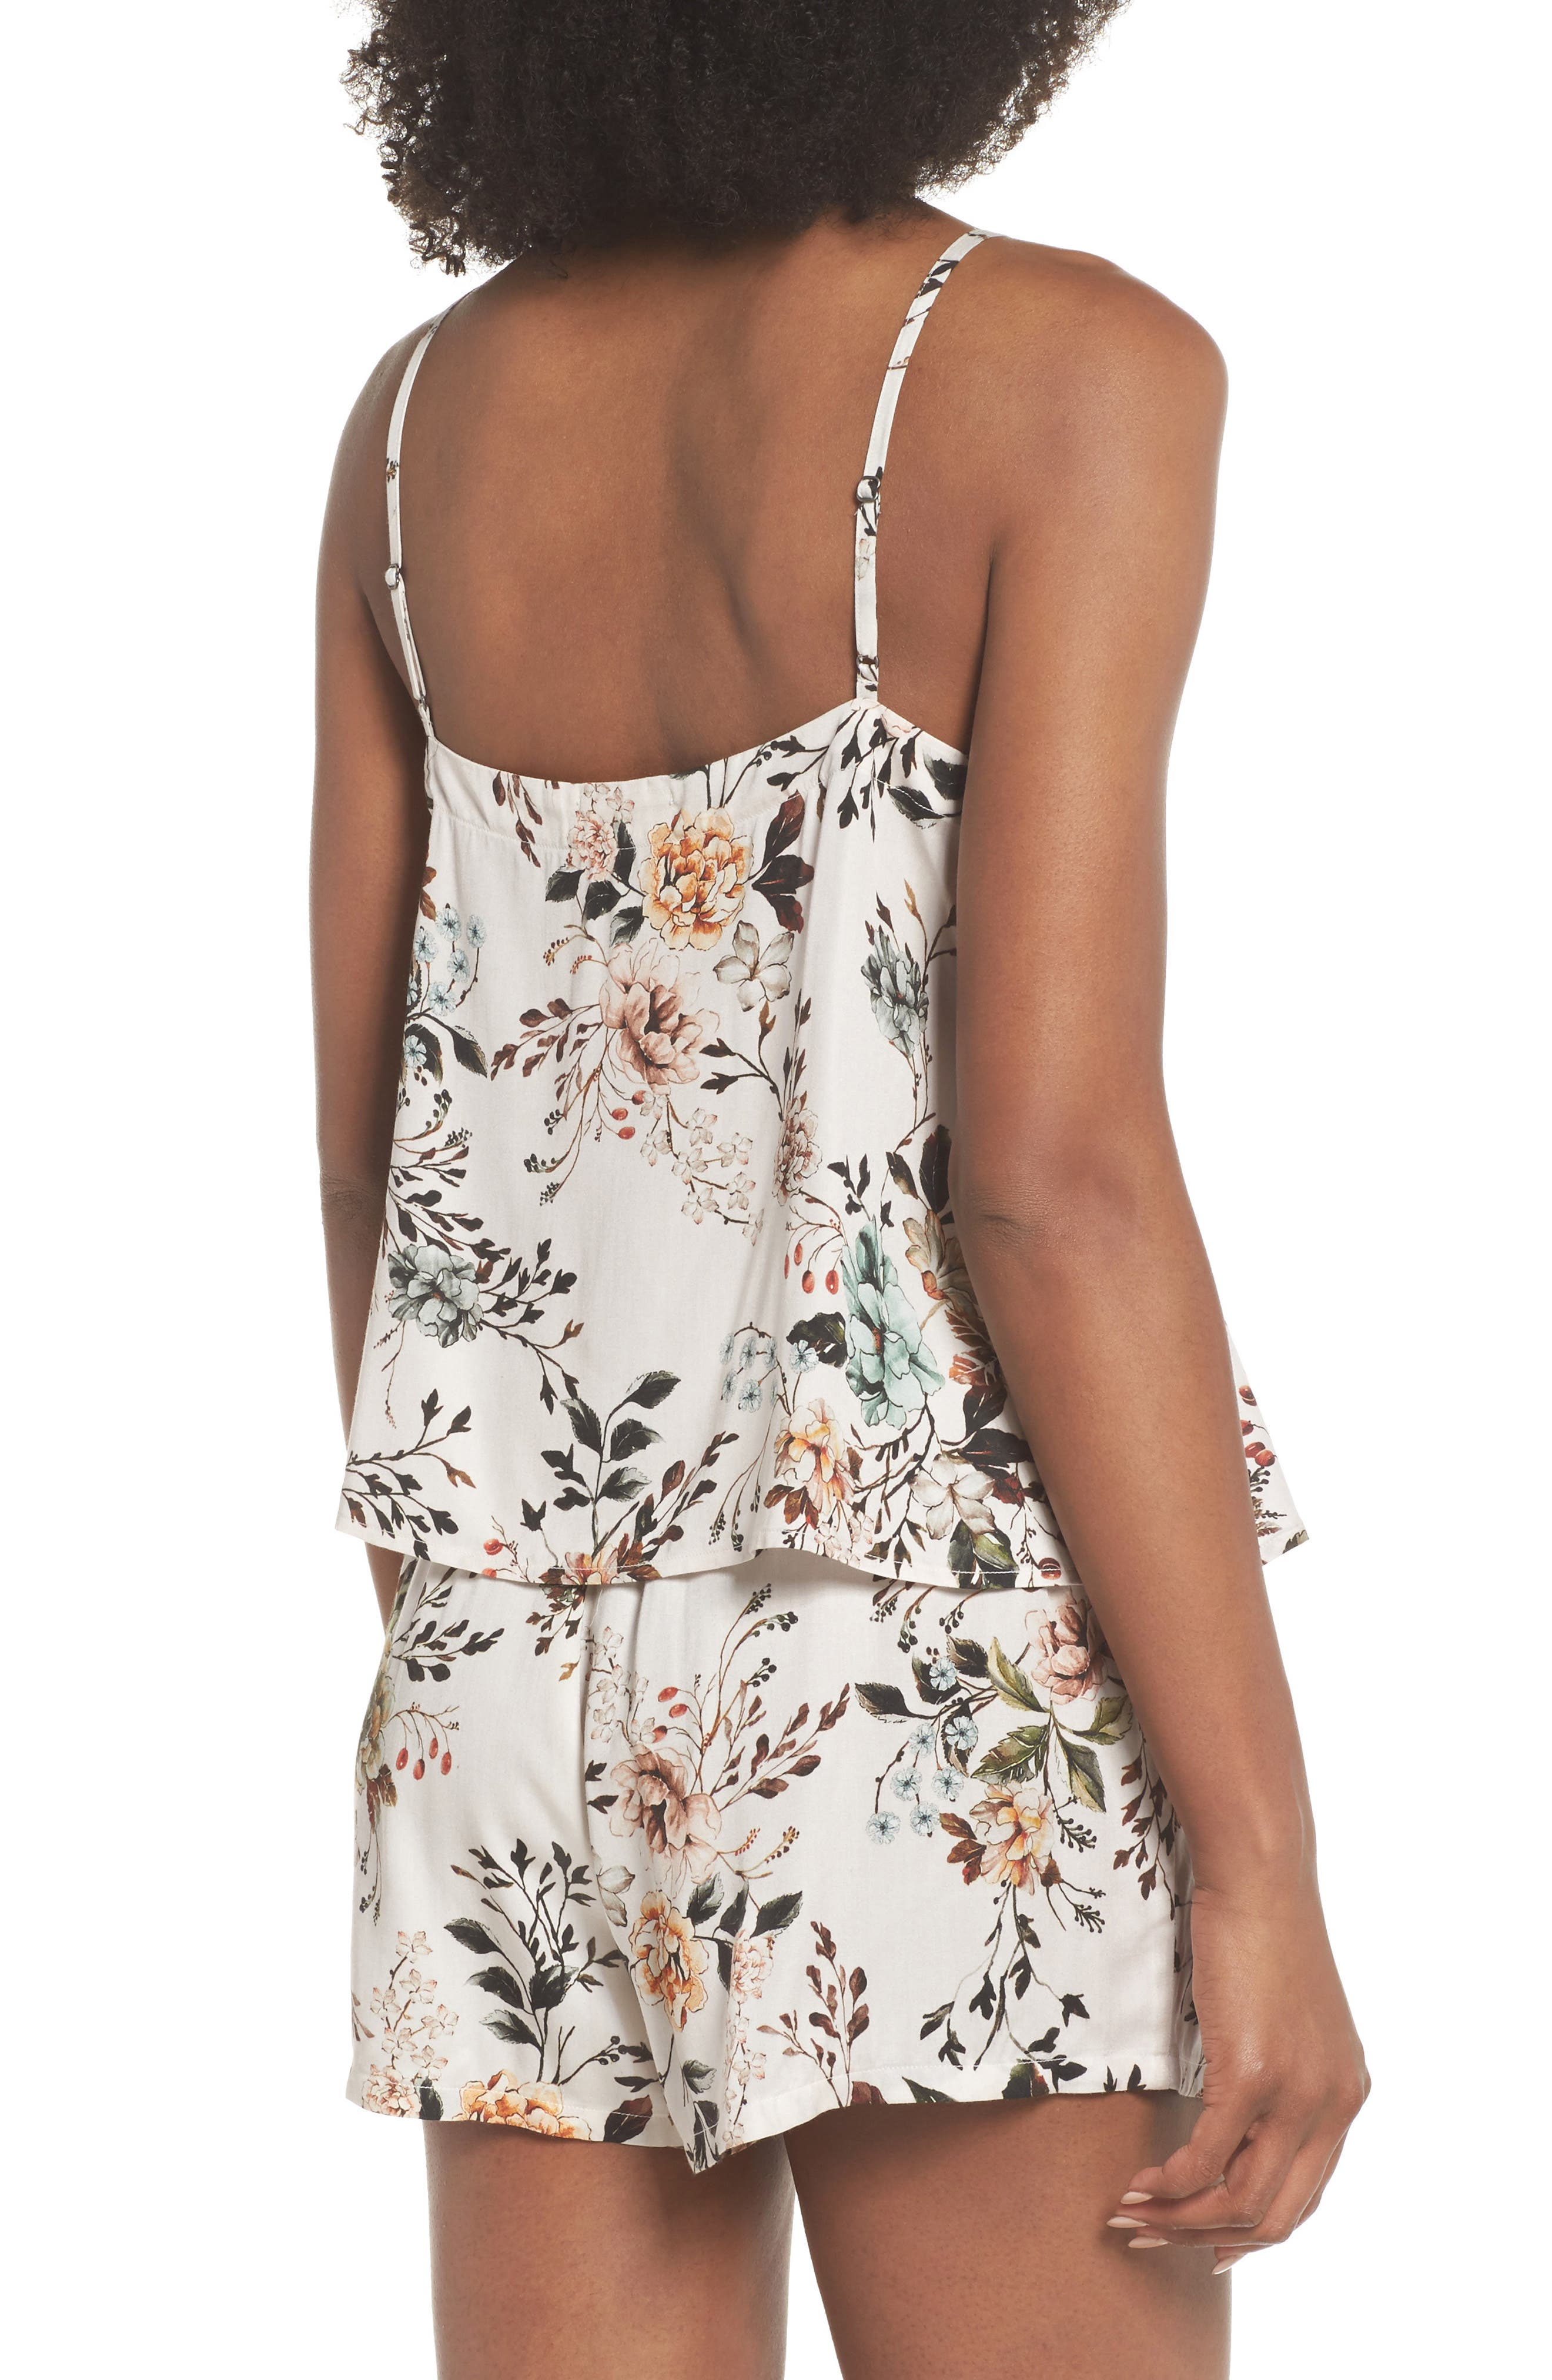 Floral Poppy Short & Camisole Pajamas,                             Alternate thumbnail 2, color,                             250